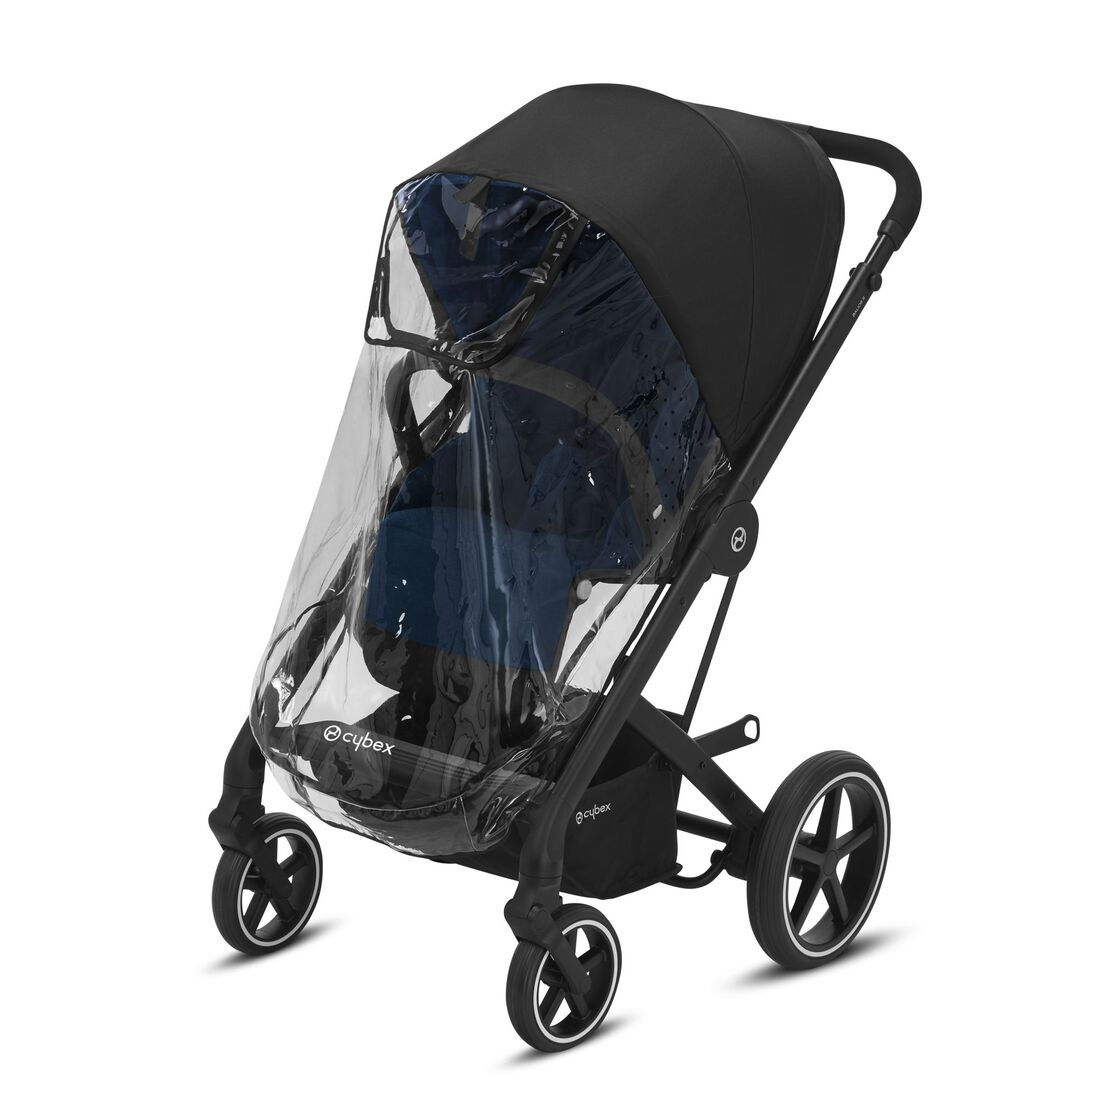 CYBEX Rain Cover Balios S - Transparent in Transparent large image number 1